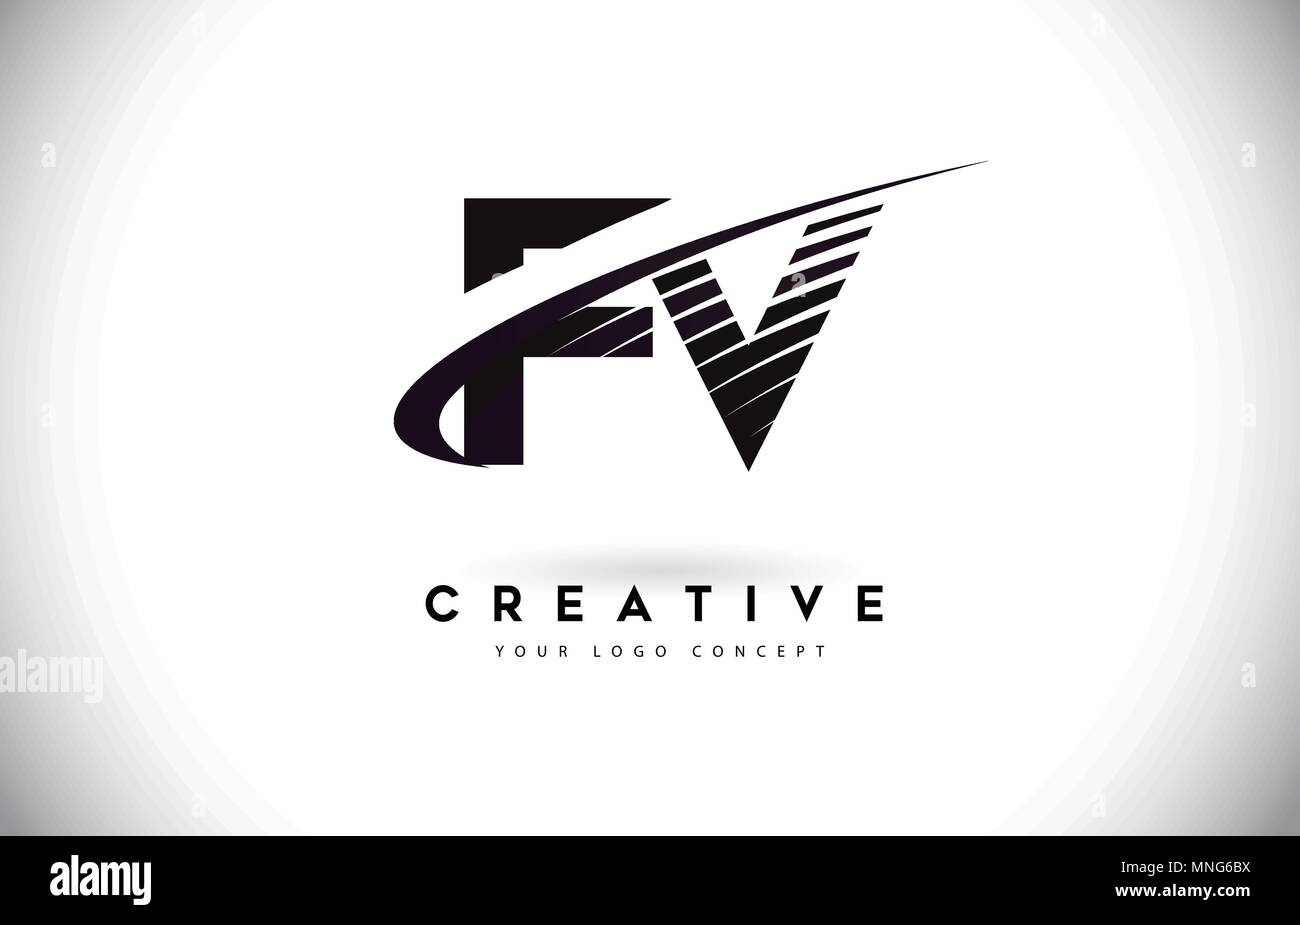 fv f v letter logo design with swoosh and black lines modern